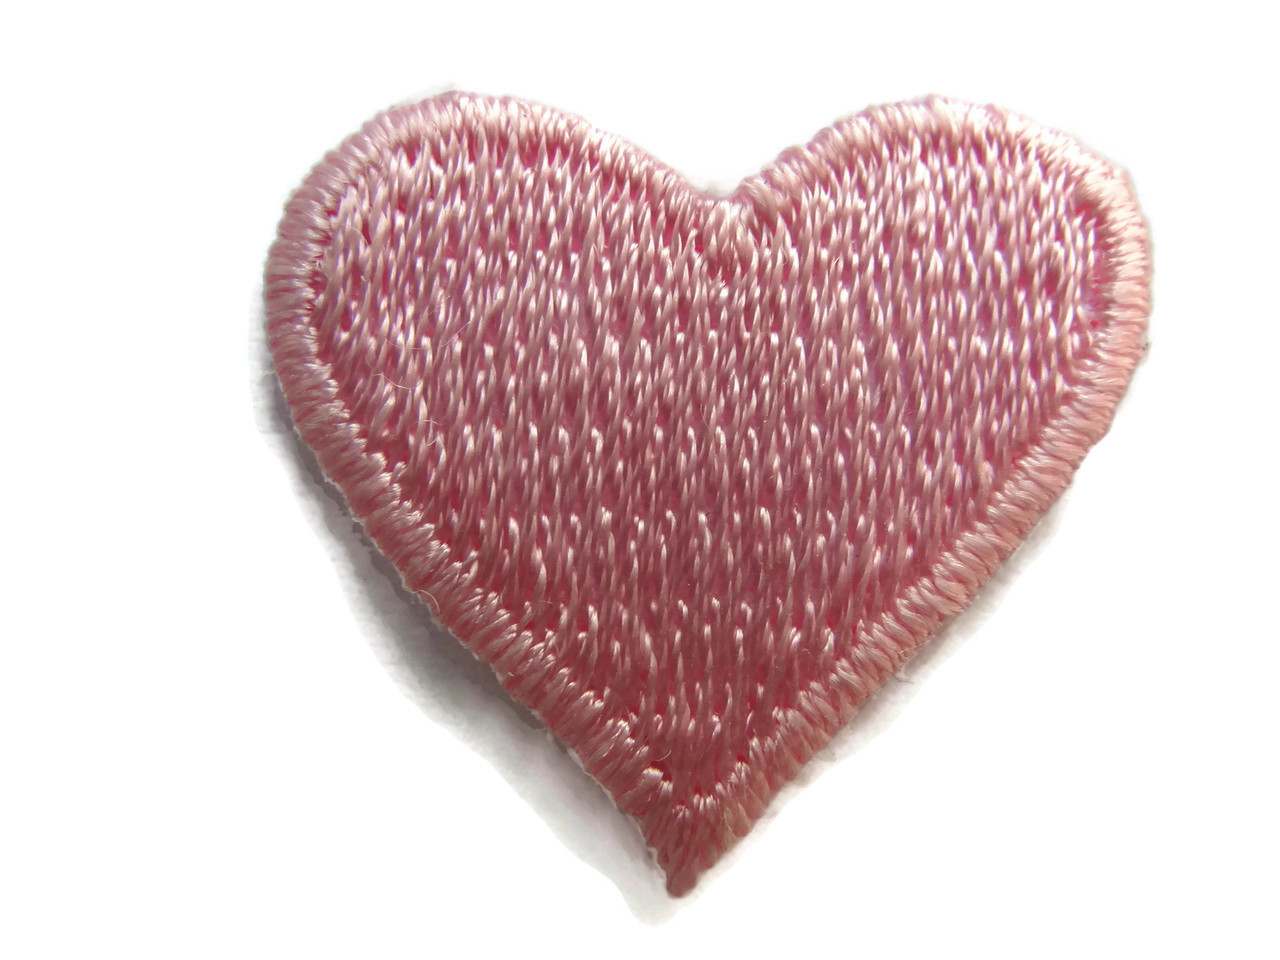 Pink heart embroidered iron on applique patch inch